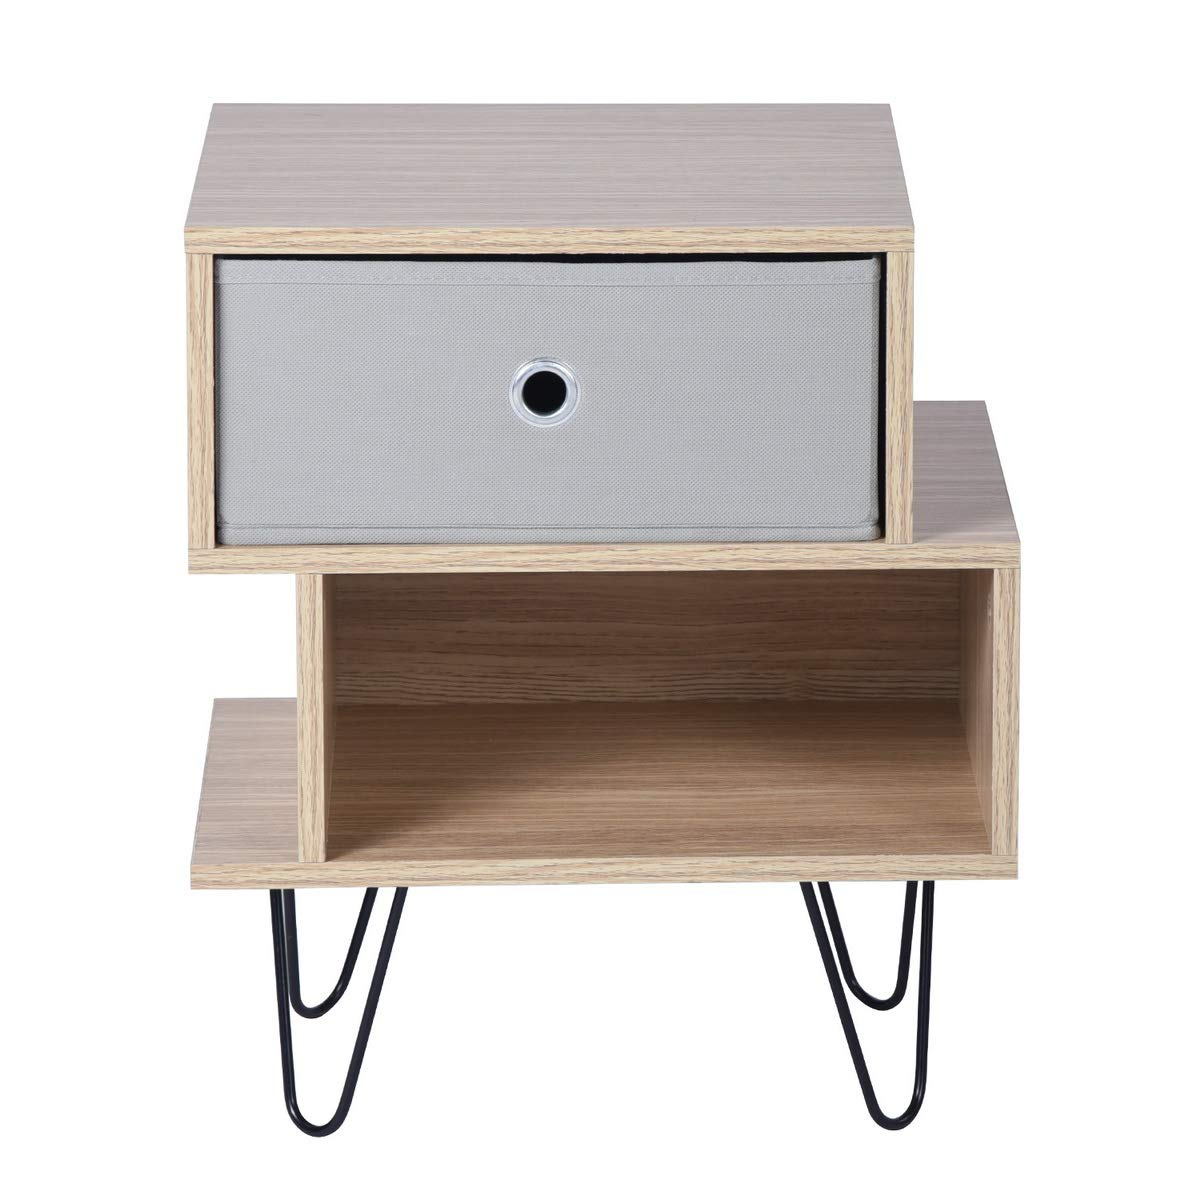 Aingoo Beside Table Nightstand Cabinet with 1 Fabric Drawer End Side Sofa Table Storage Units with Steel Legs for Bedroom Living Room Oak